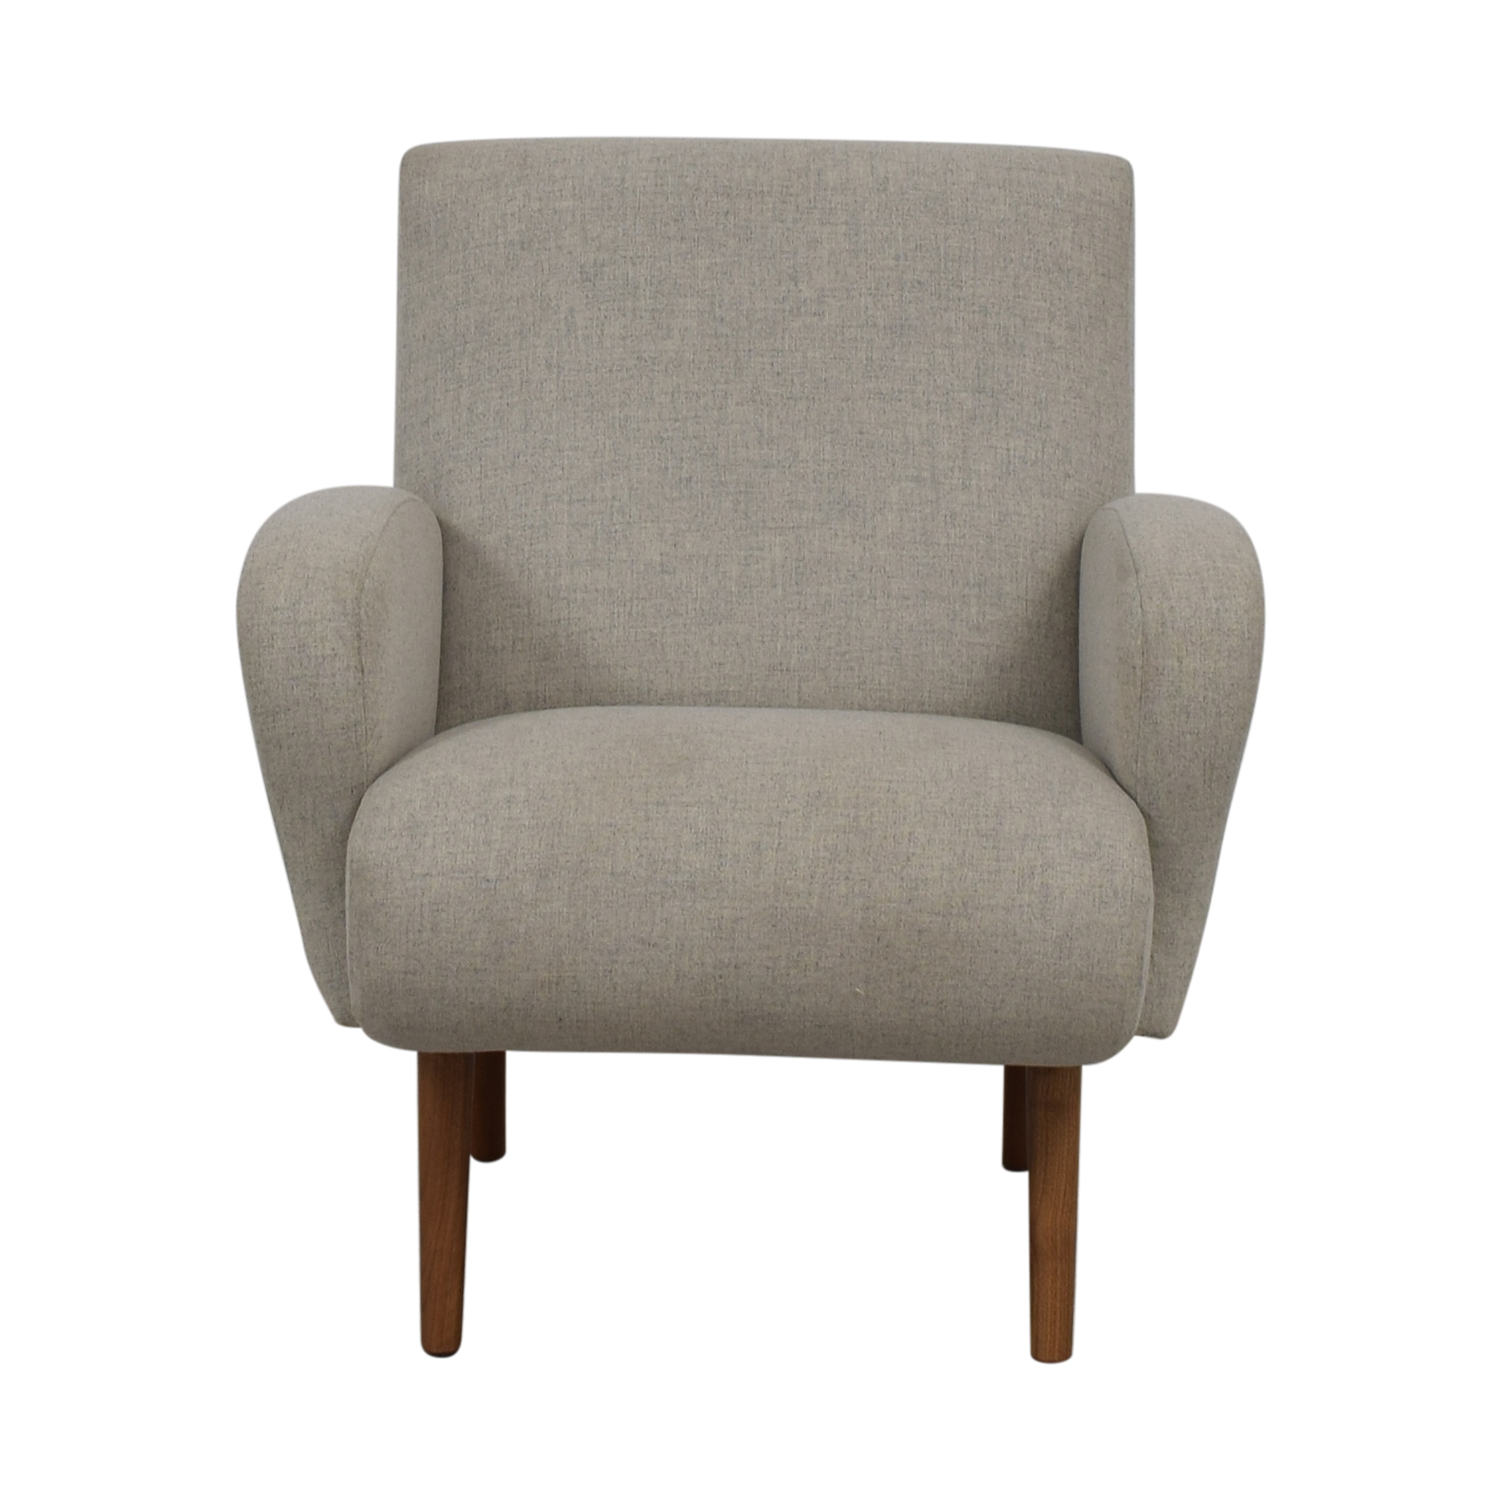 Furniture Masters Furniture Masters Grey Microfiber Wing Accent Chair nyc